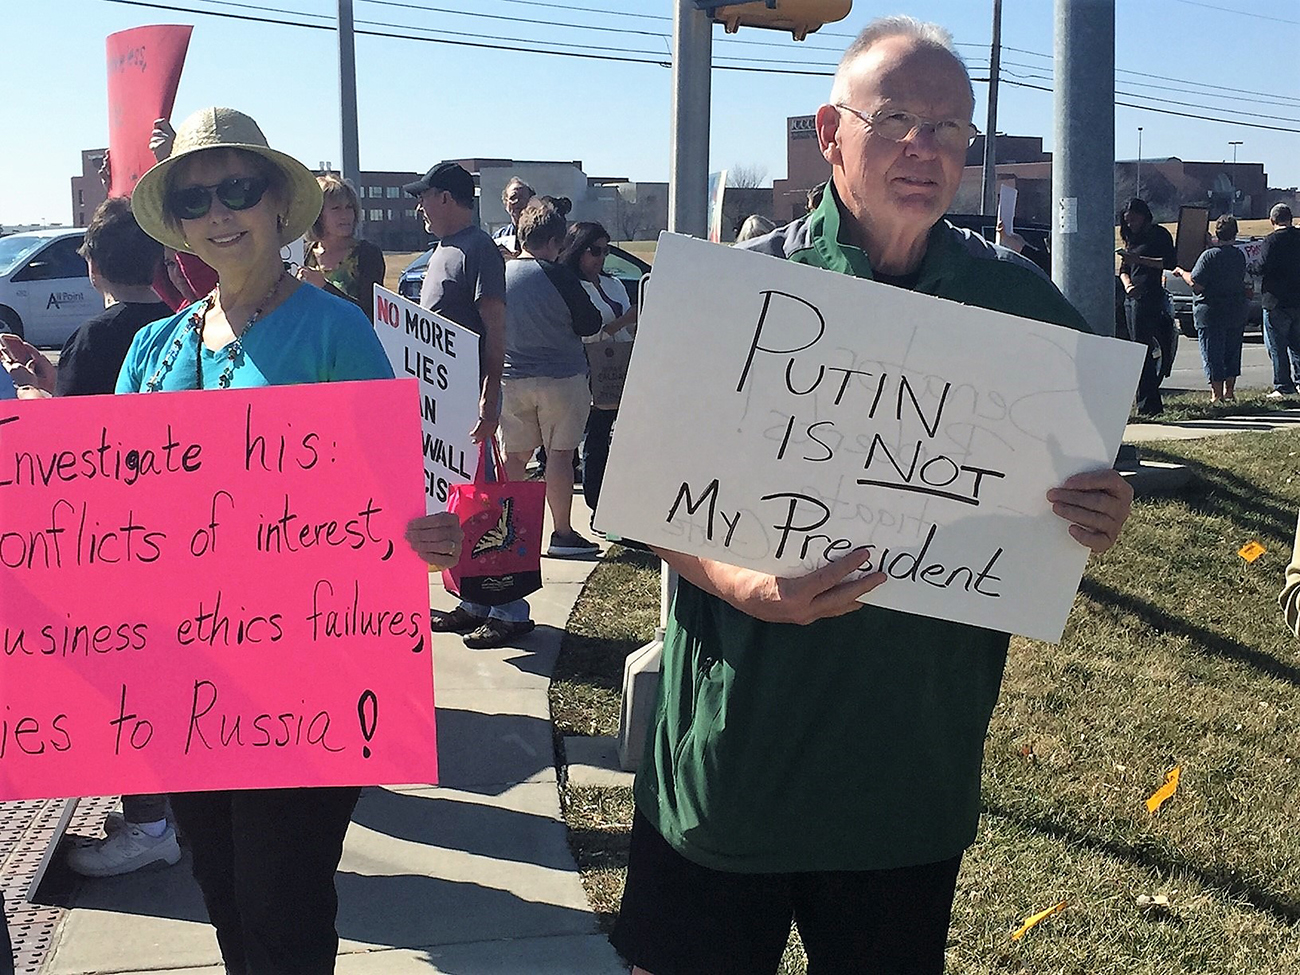 Protesters gather in Overland Park (Photo by Jim McLean)